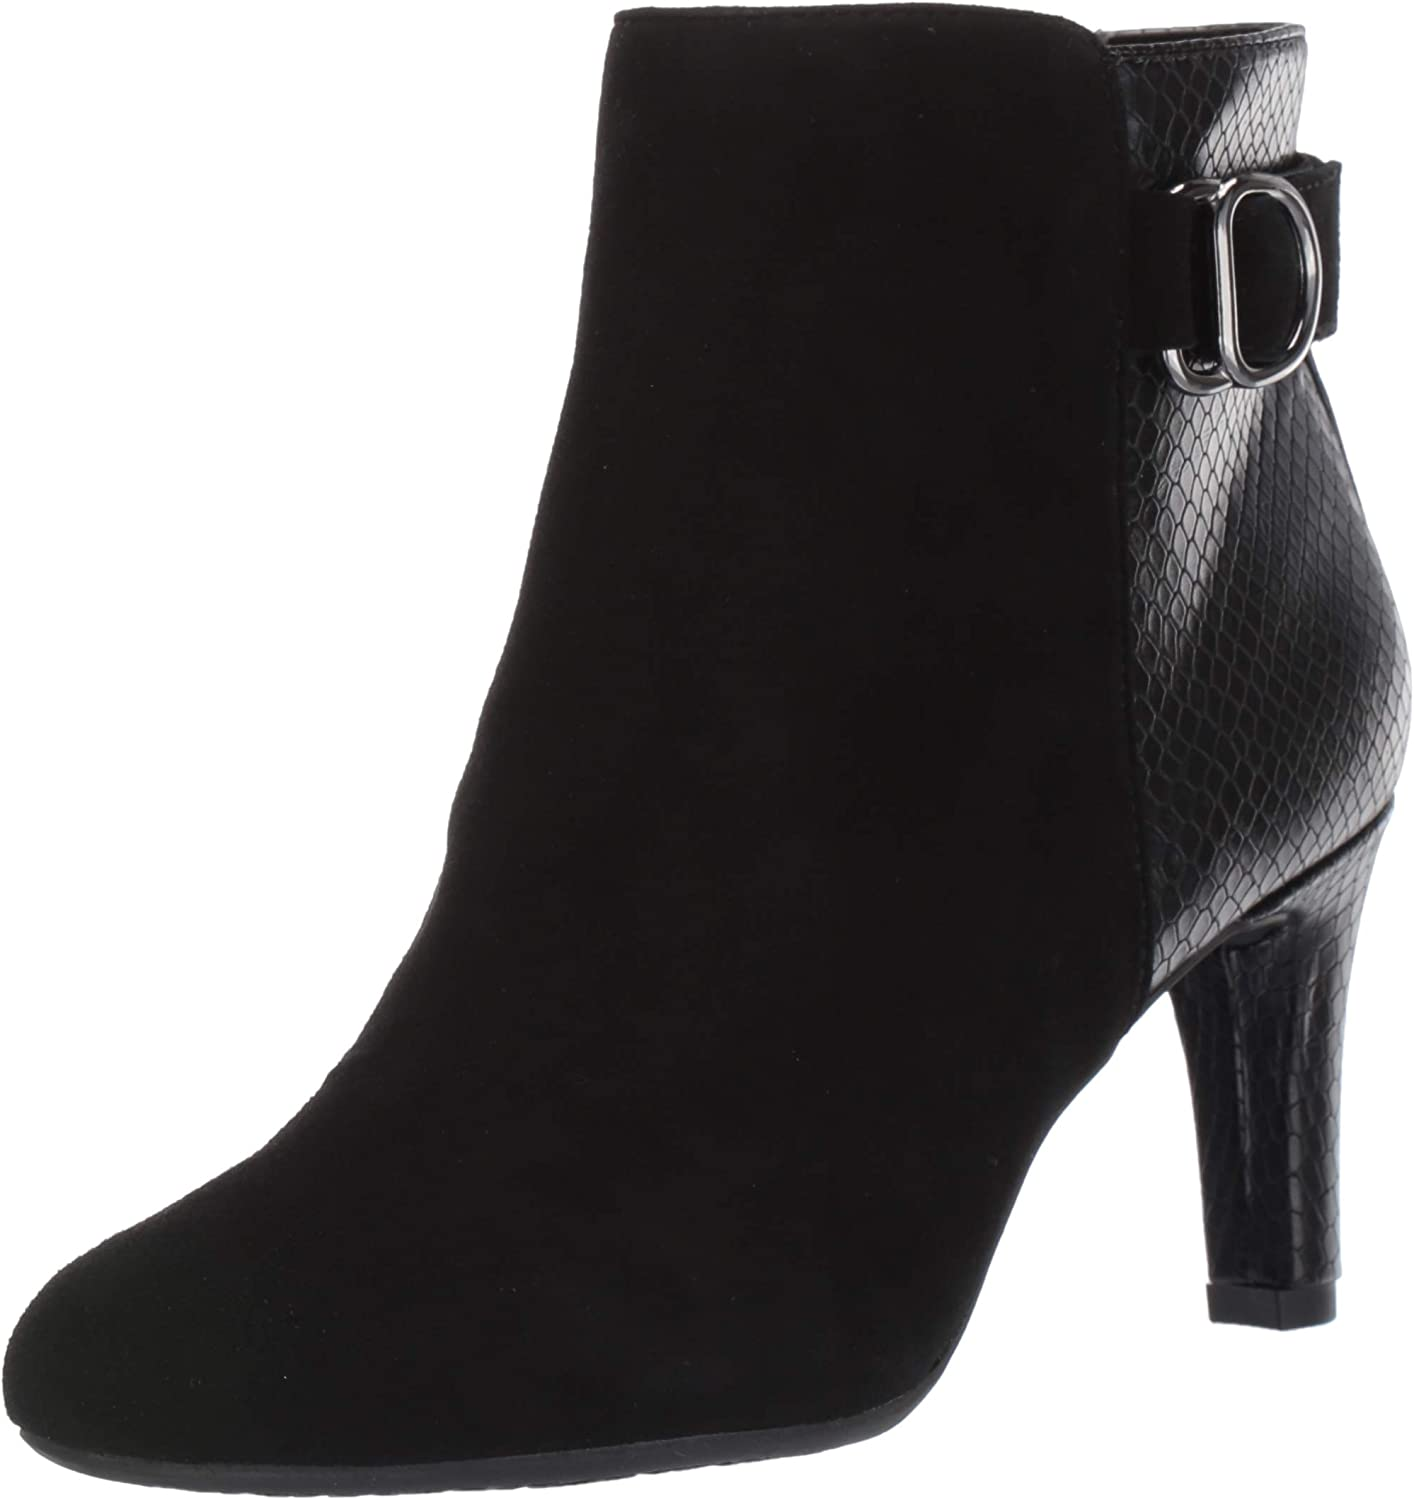 Bandolino Women's Lanna Ankle Boot